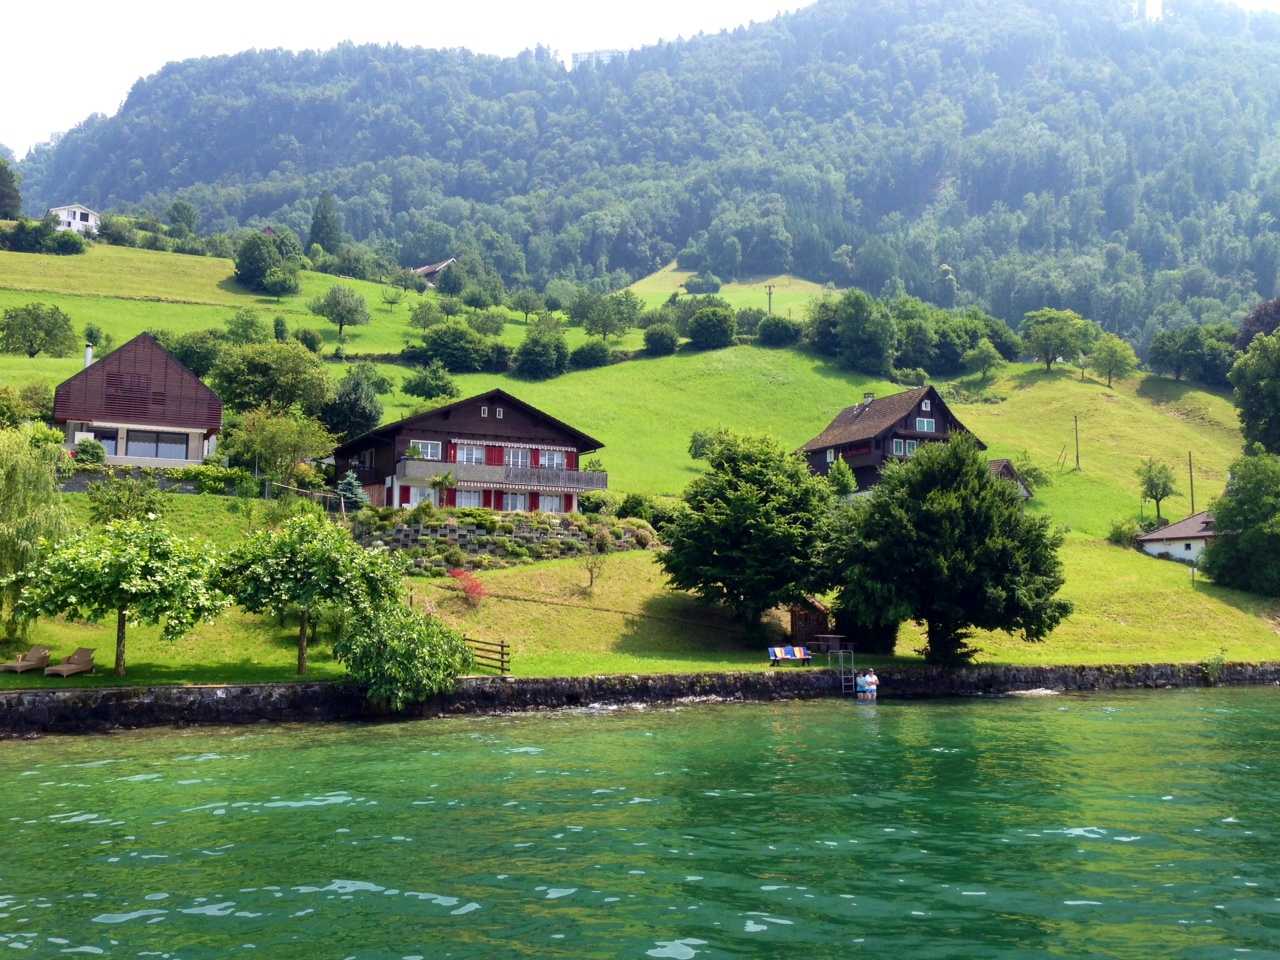 A couple stepping into Lake Lucern from their house - The Key To Taking A Guilt-Free Expensive Vacation